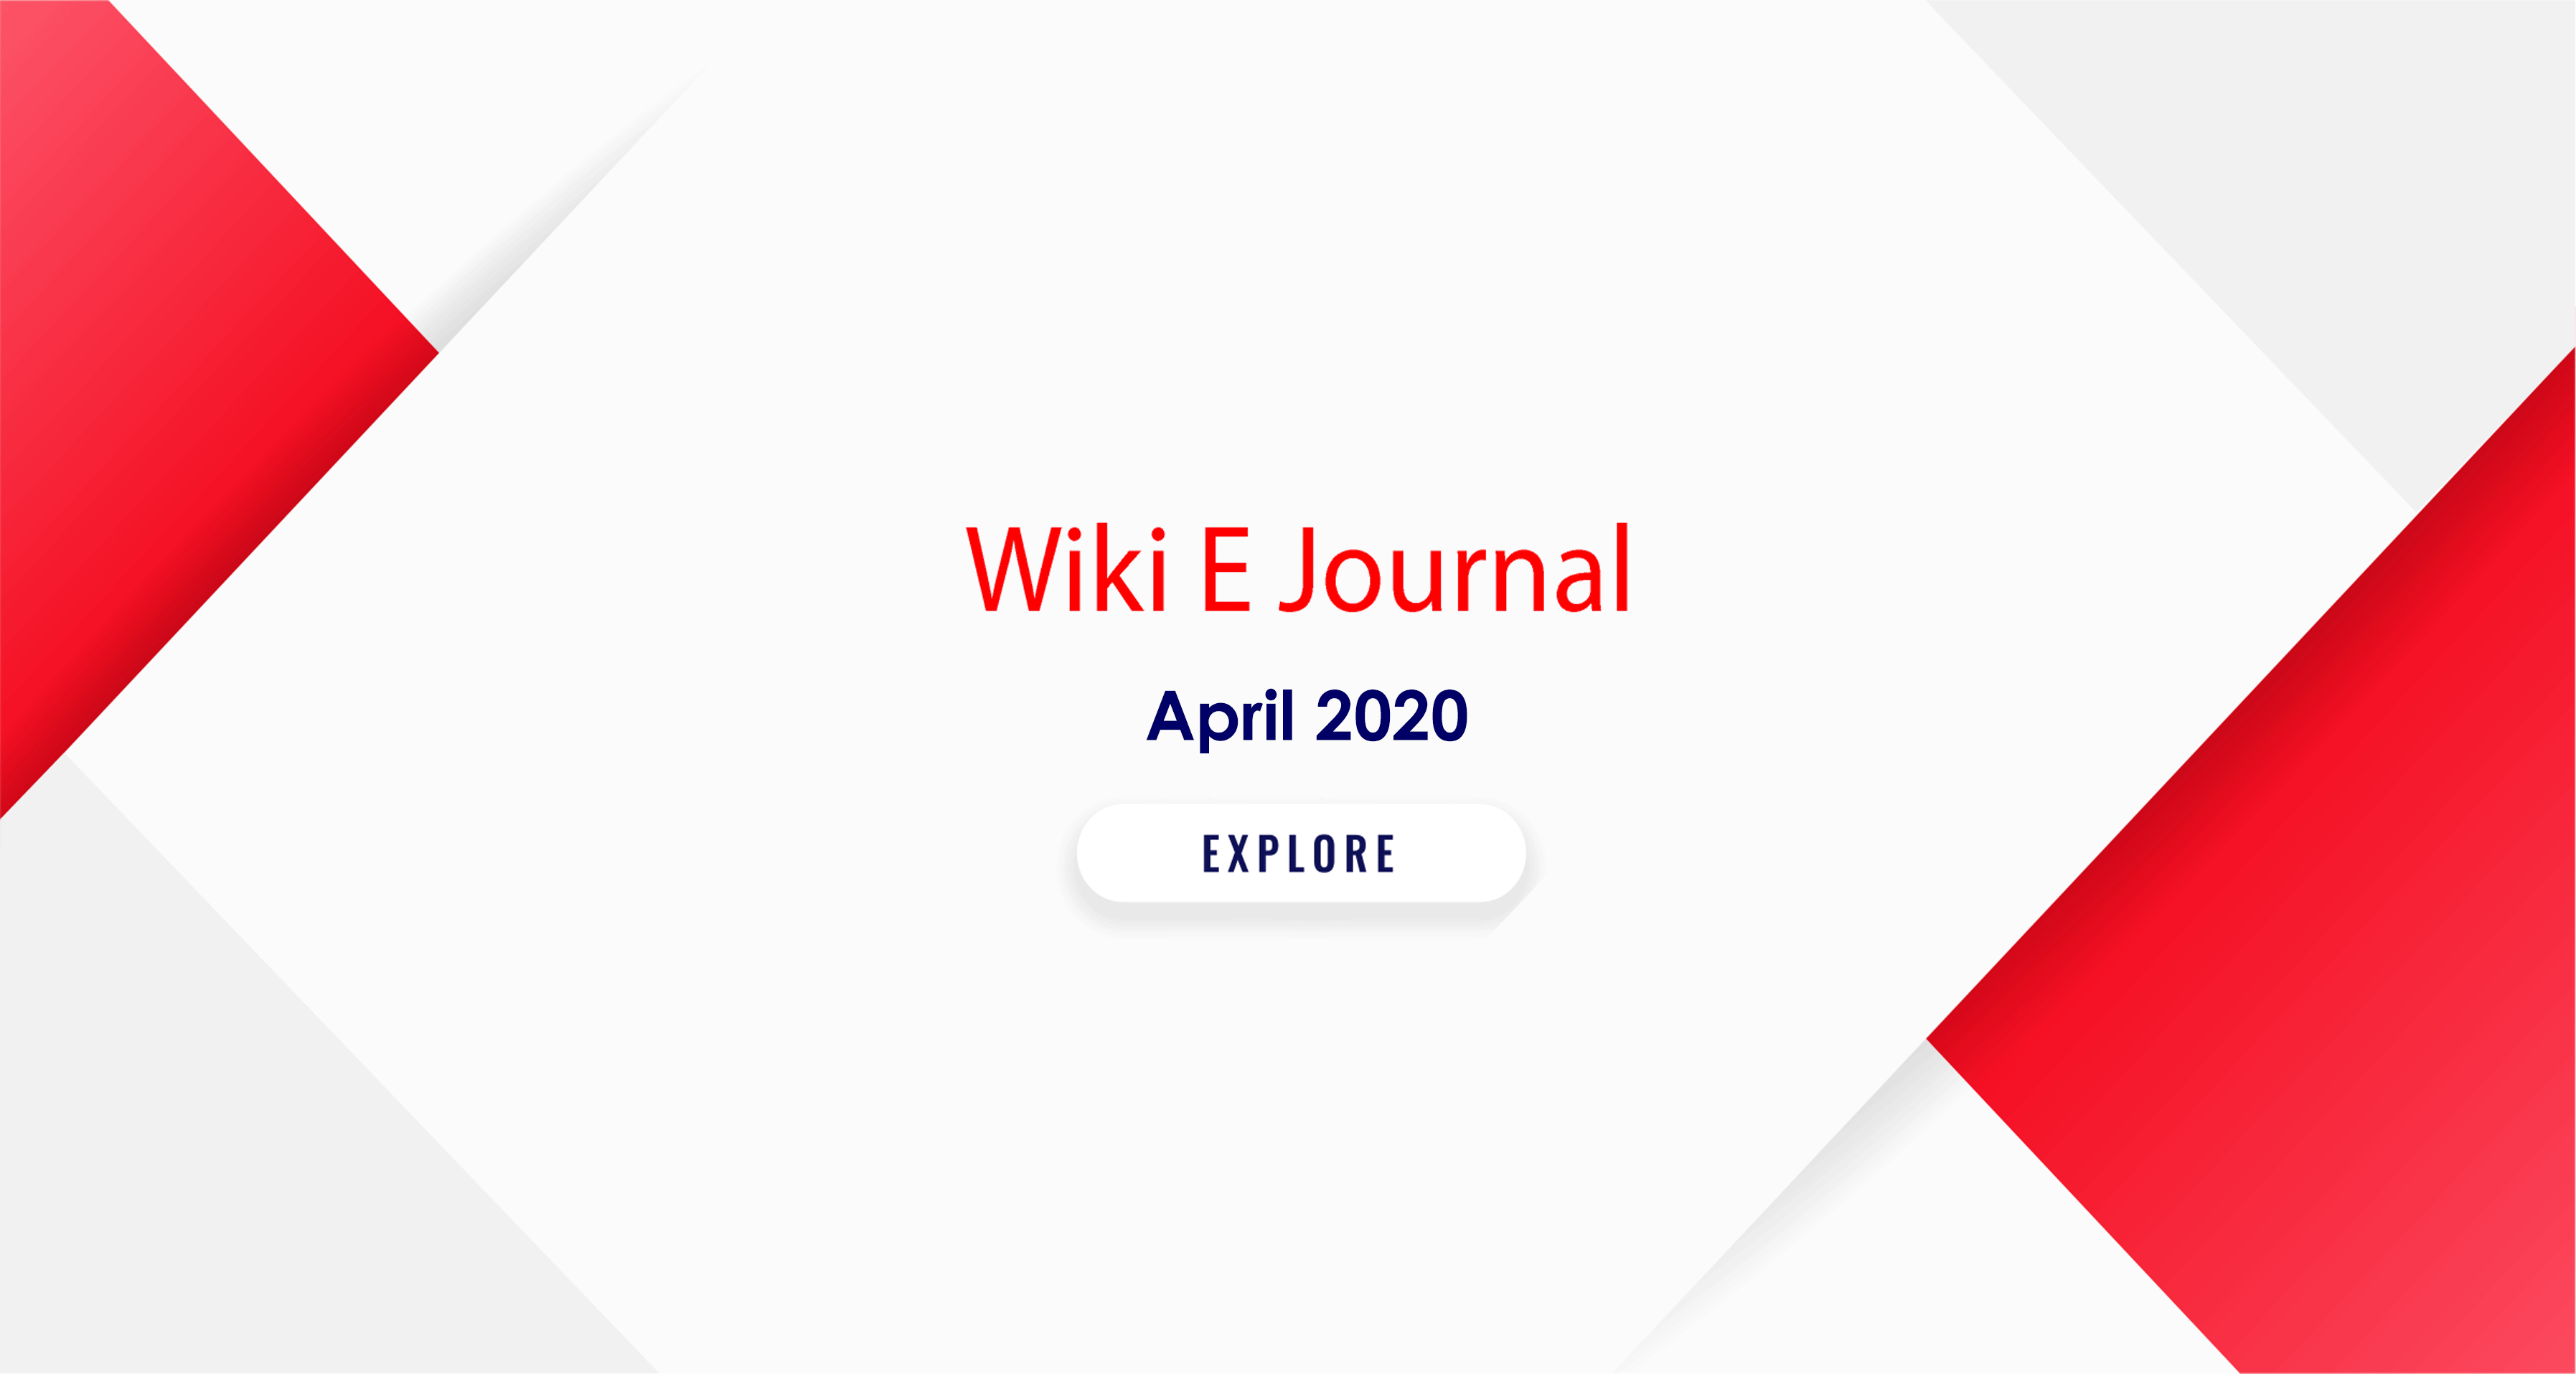 SBS Wiki E Journal April 2020